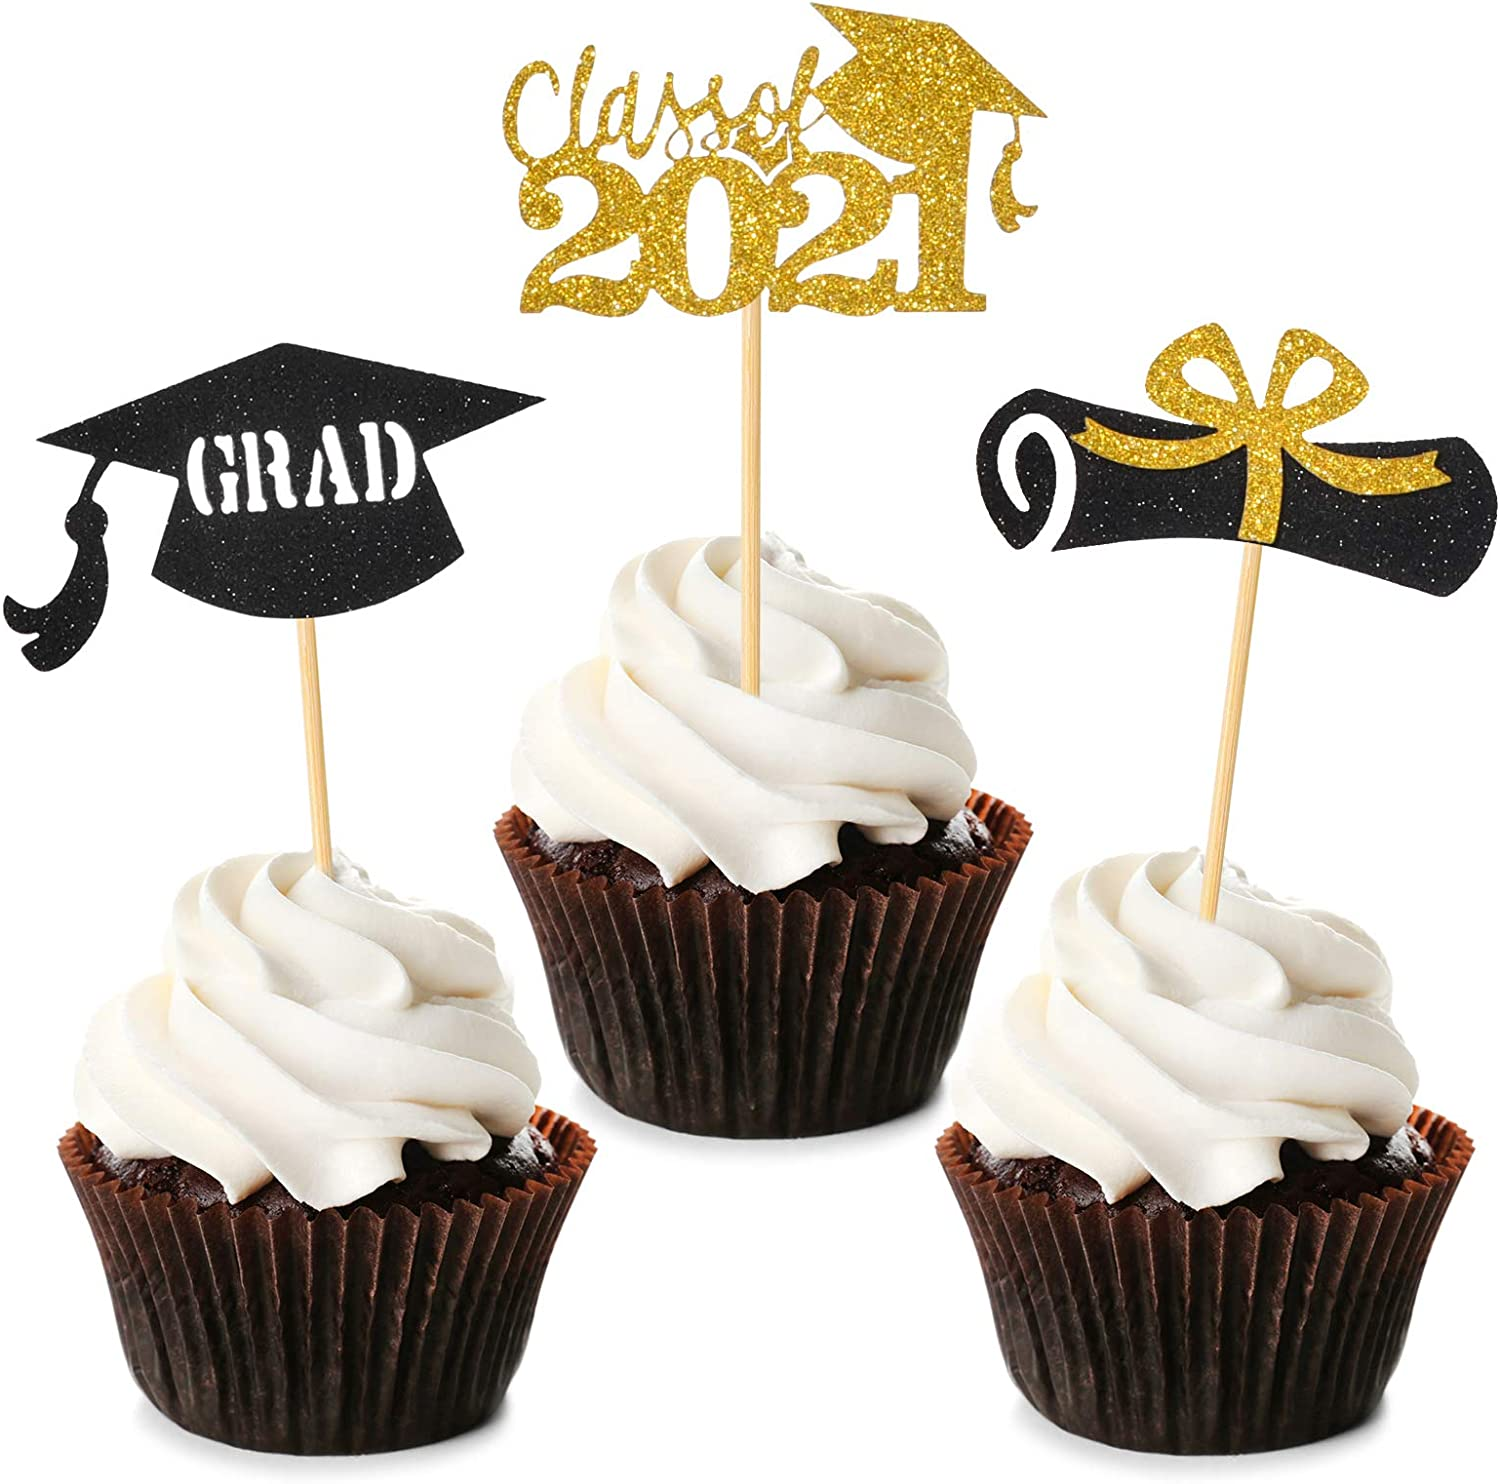 Witgift 80PCS Graduation Cupcake Toppers, 2021 Food Picks For Graduation Party Mini Glitter Toppers Cake Decorations, Congrats Grad, Class of 2021